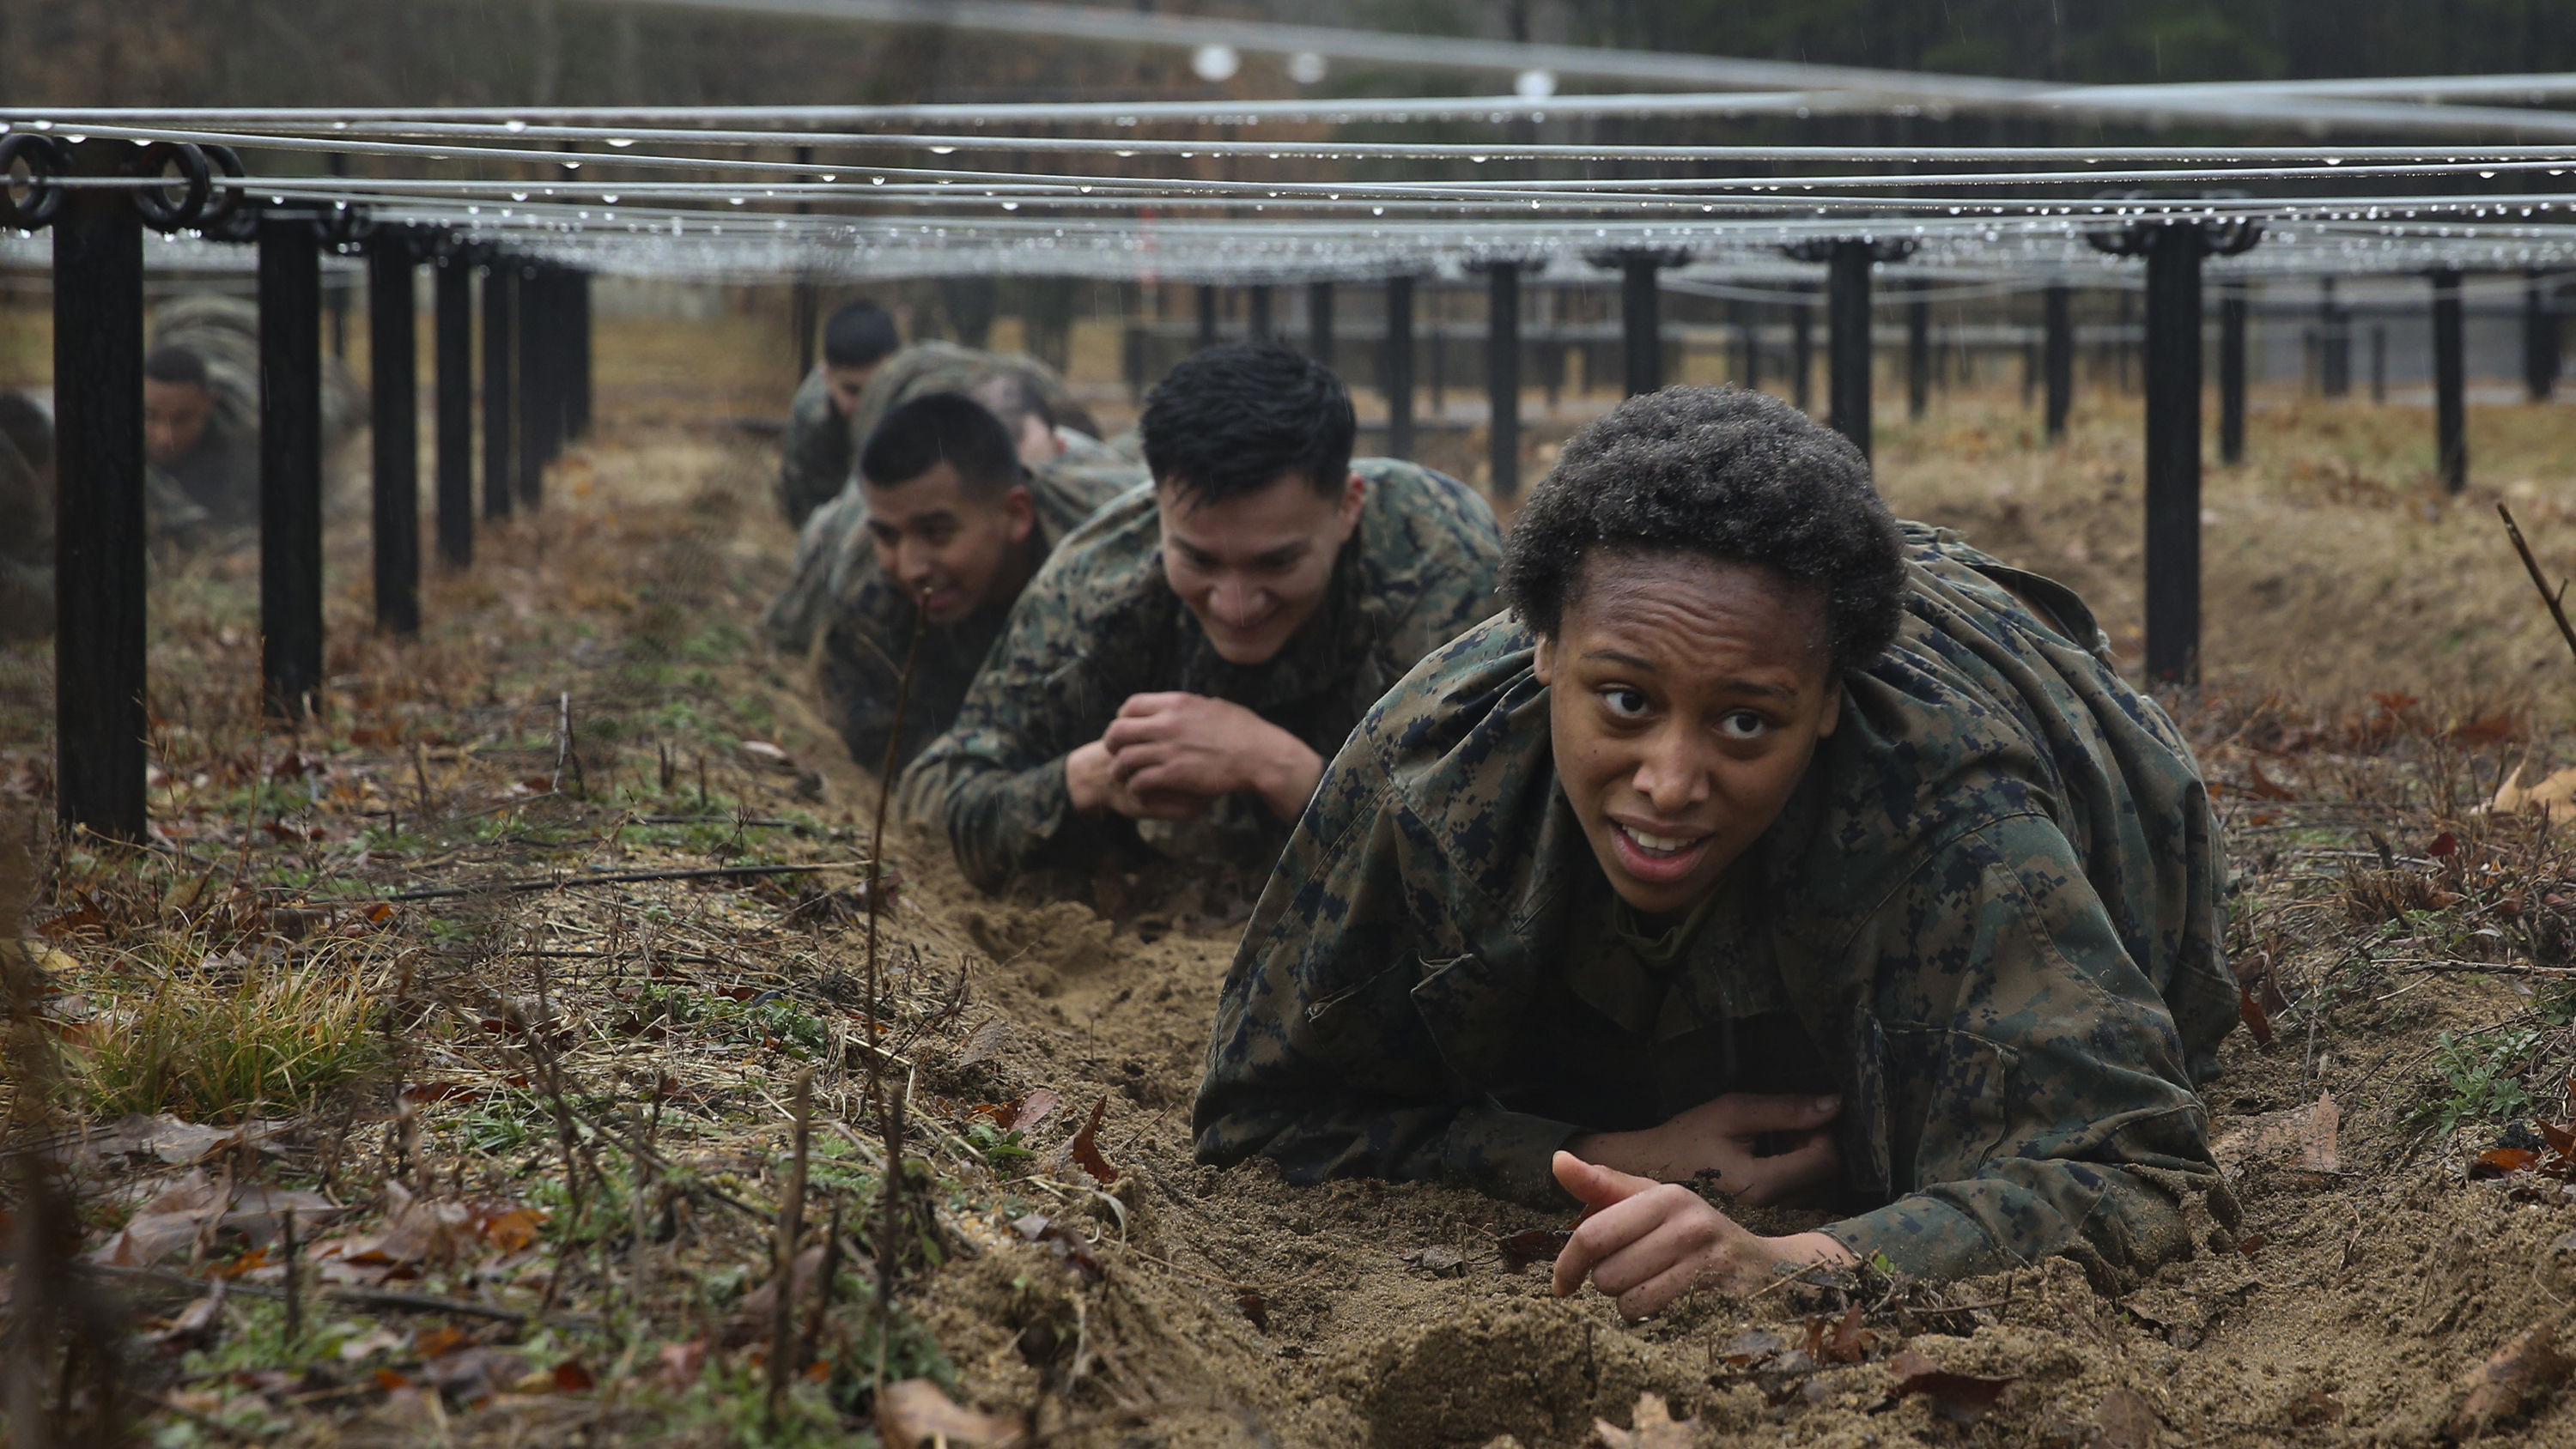 Marines from Corporals Course 615-20 with Combat Instructor Battalion go through the NATO standardized obstacle course at Marine Corps Base Quantico, Va., Feb. 13, 2020. (Sgt. Ann K. Correa/Marine Corps)